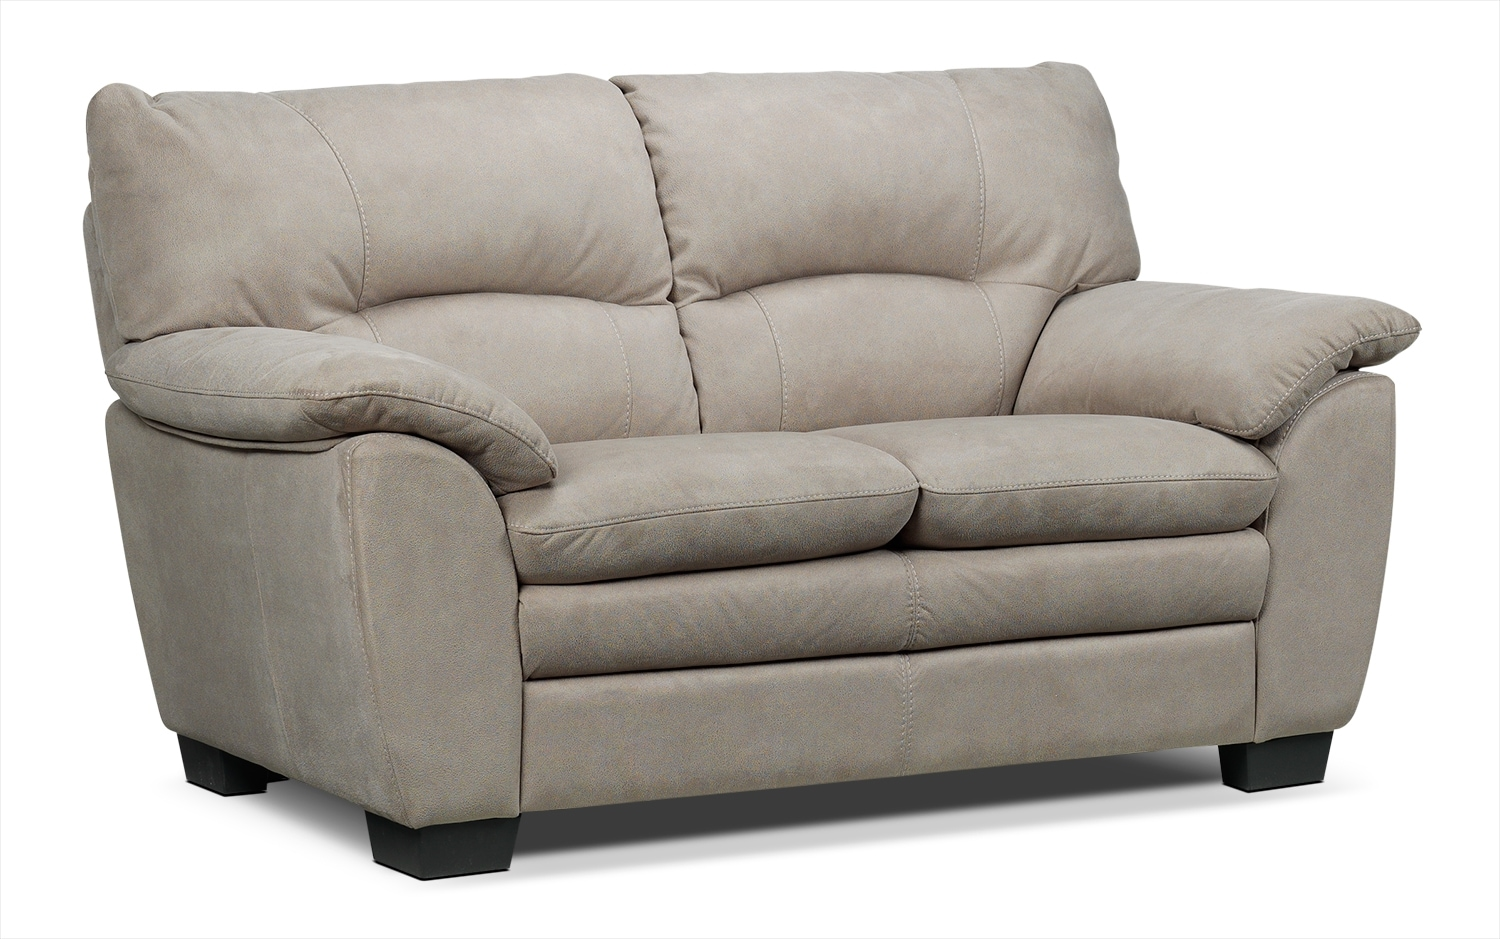 Living Room Furniture - Kelleher Loveseat -  Silver Grey